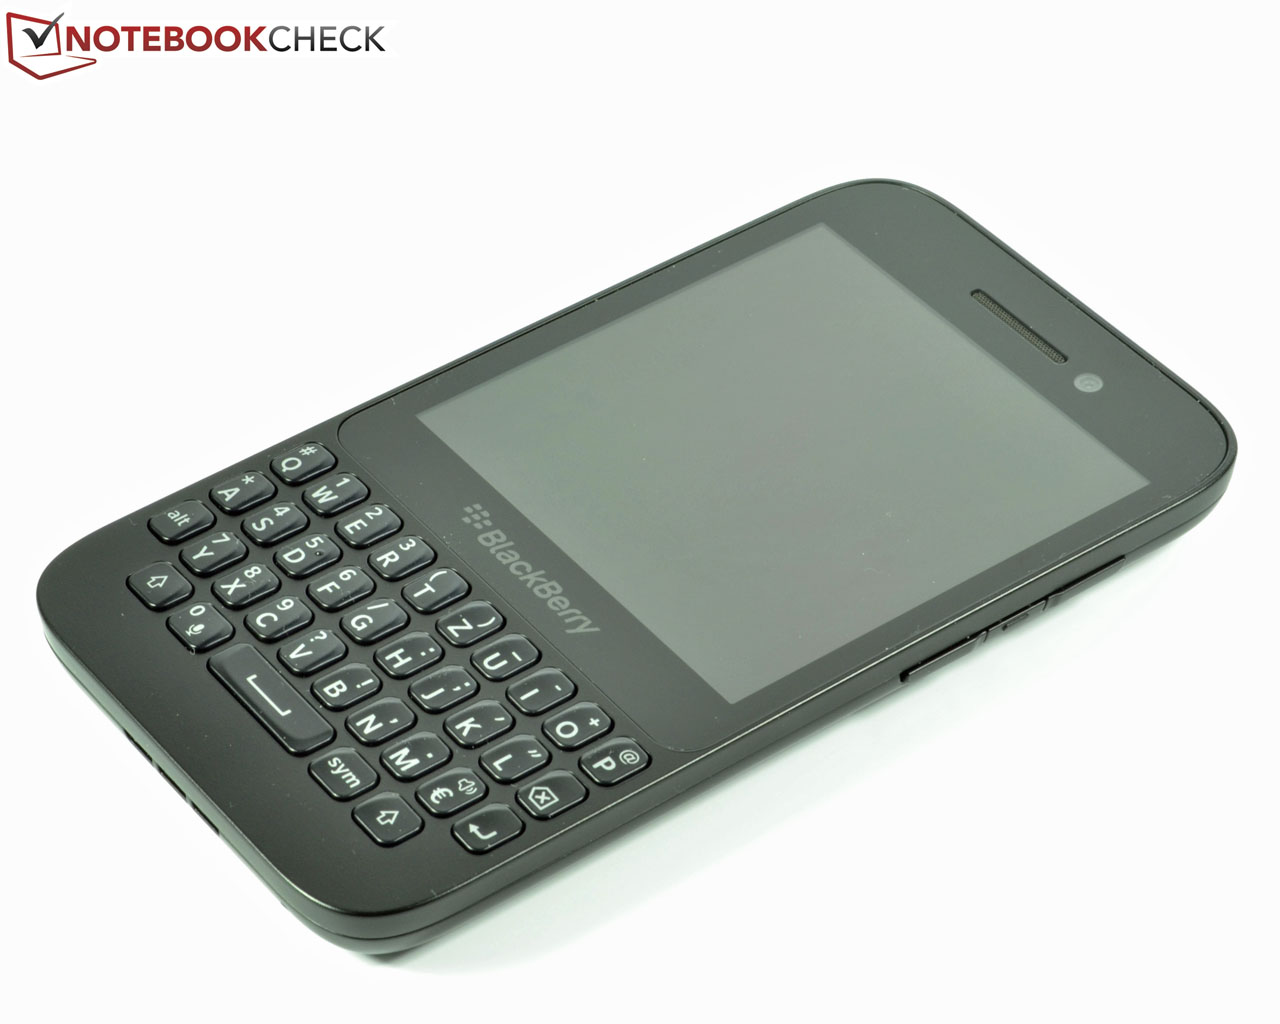 Blackberry Q5 Is with Qwerty Keyboard for 350 Euros Available